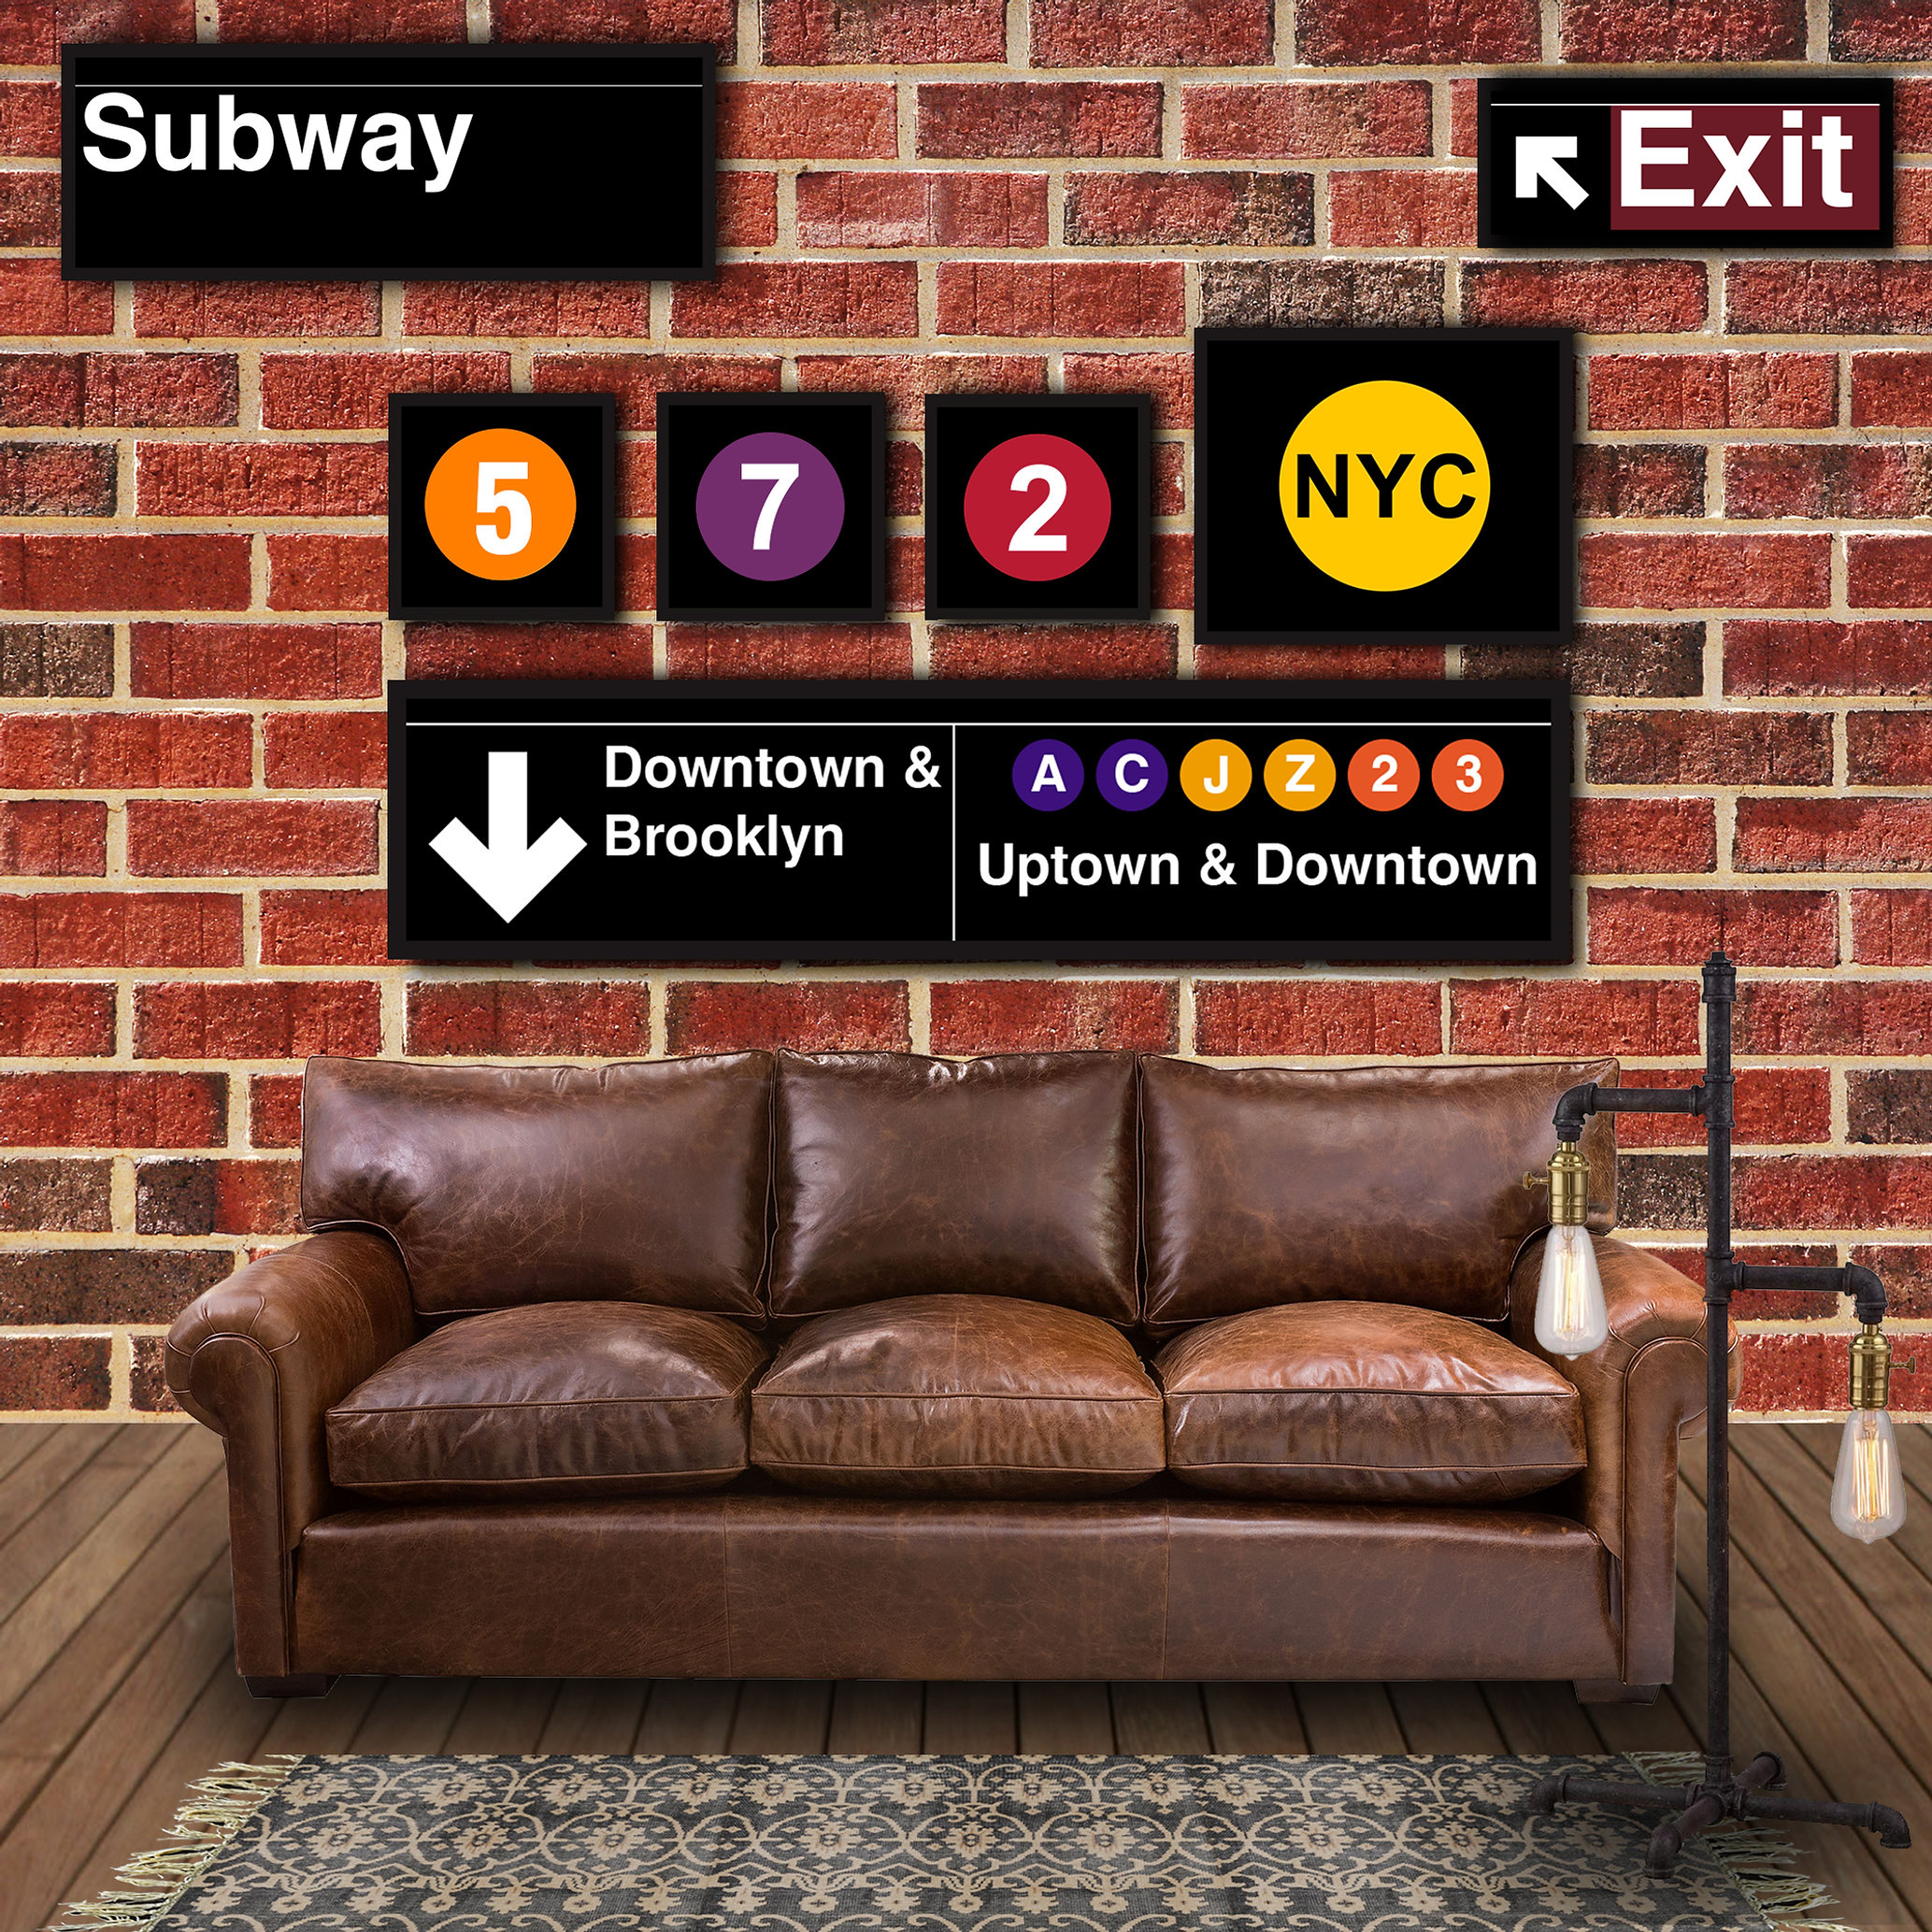 NYC Subway II